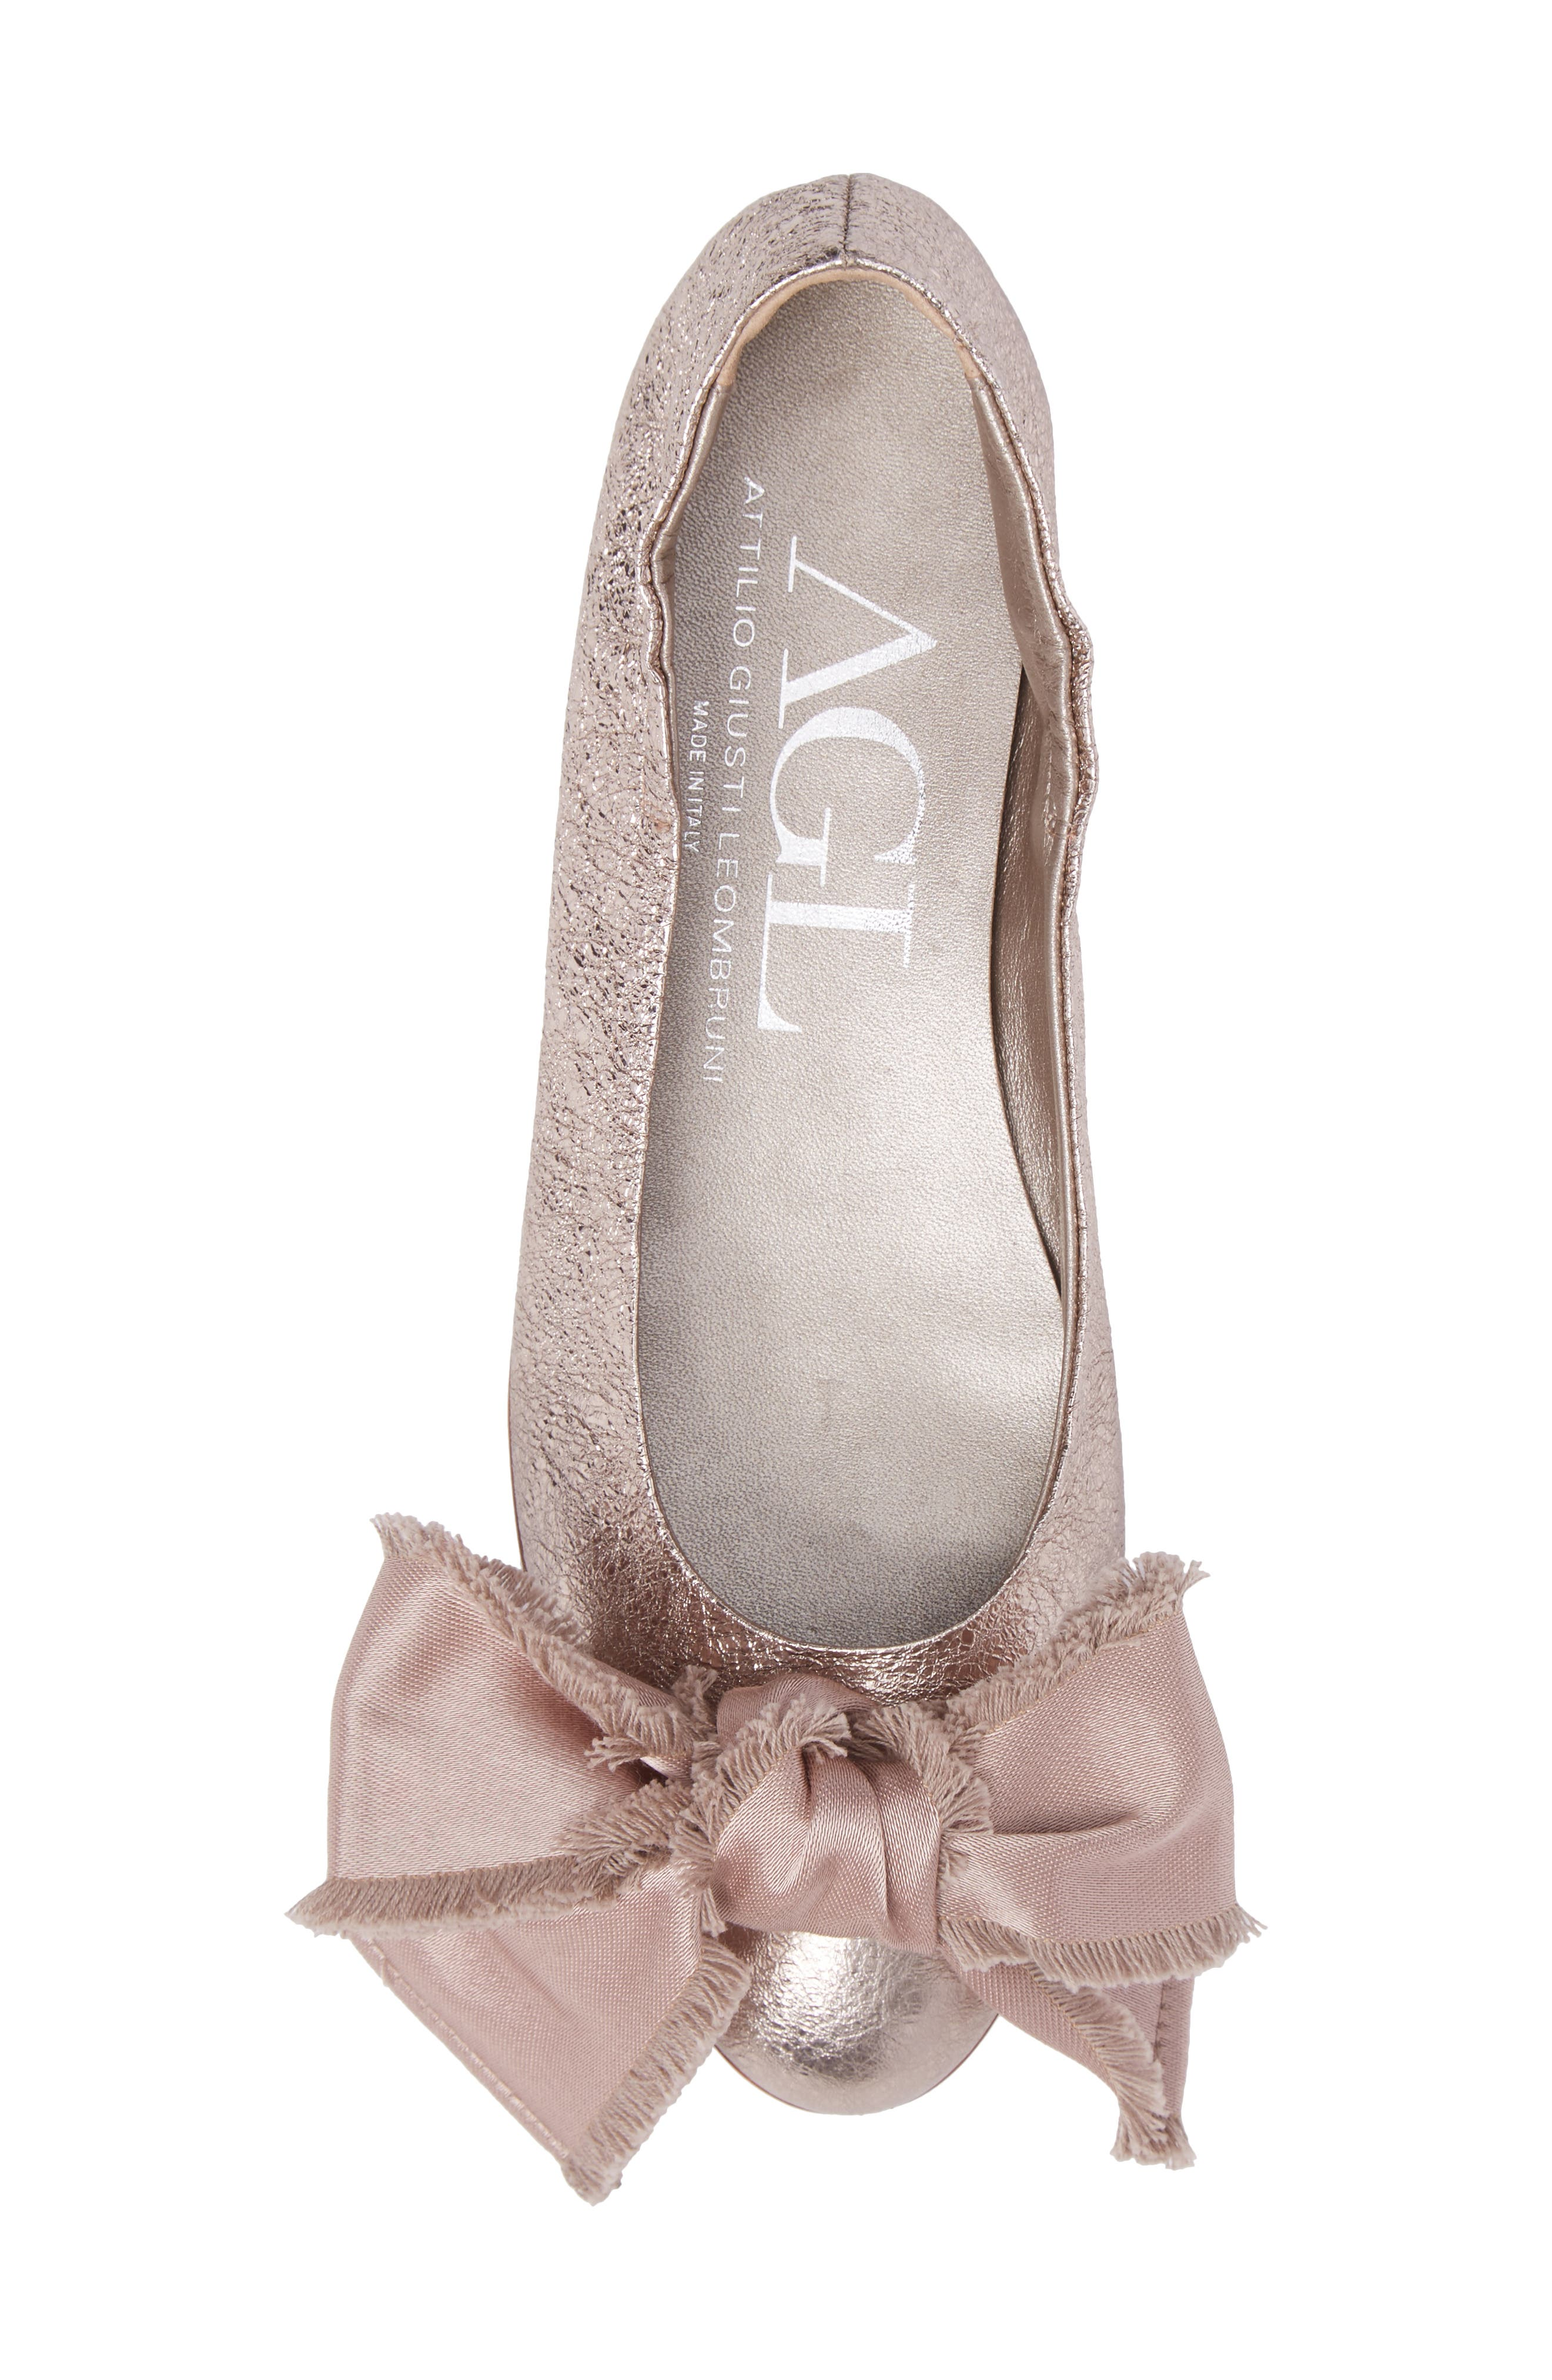 Satin Bow Ballet Flat,                             Alternate thumbnail 4, color,                             Pink Leather